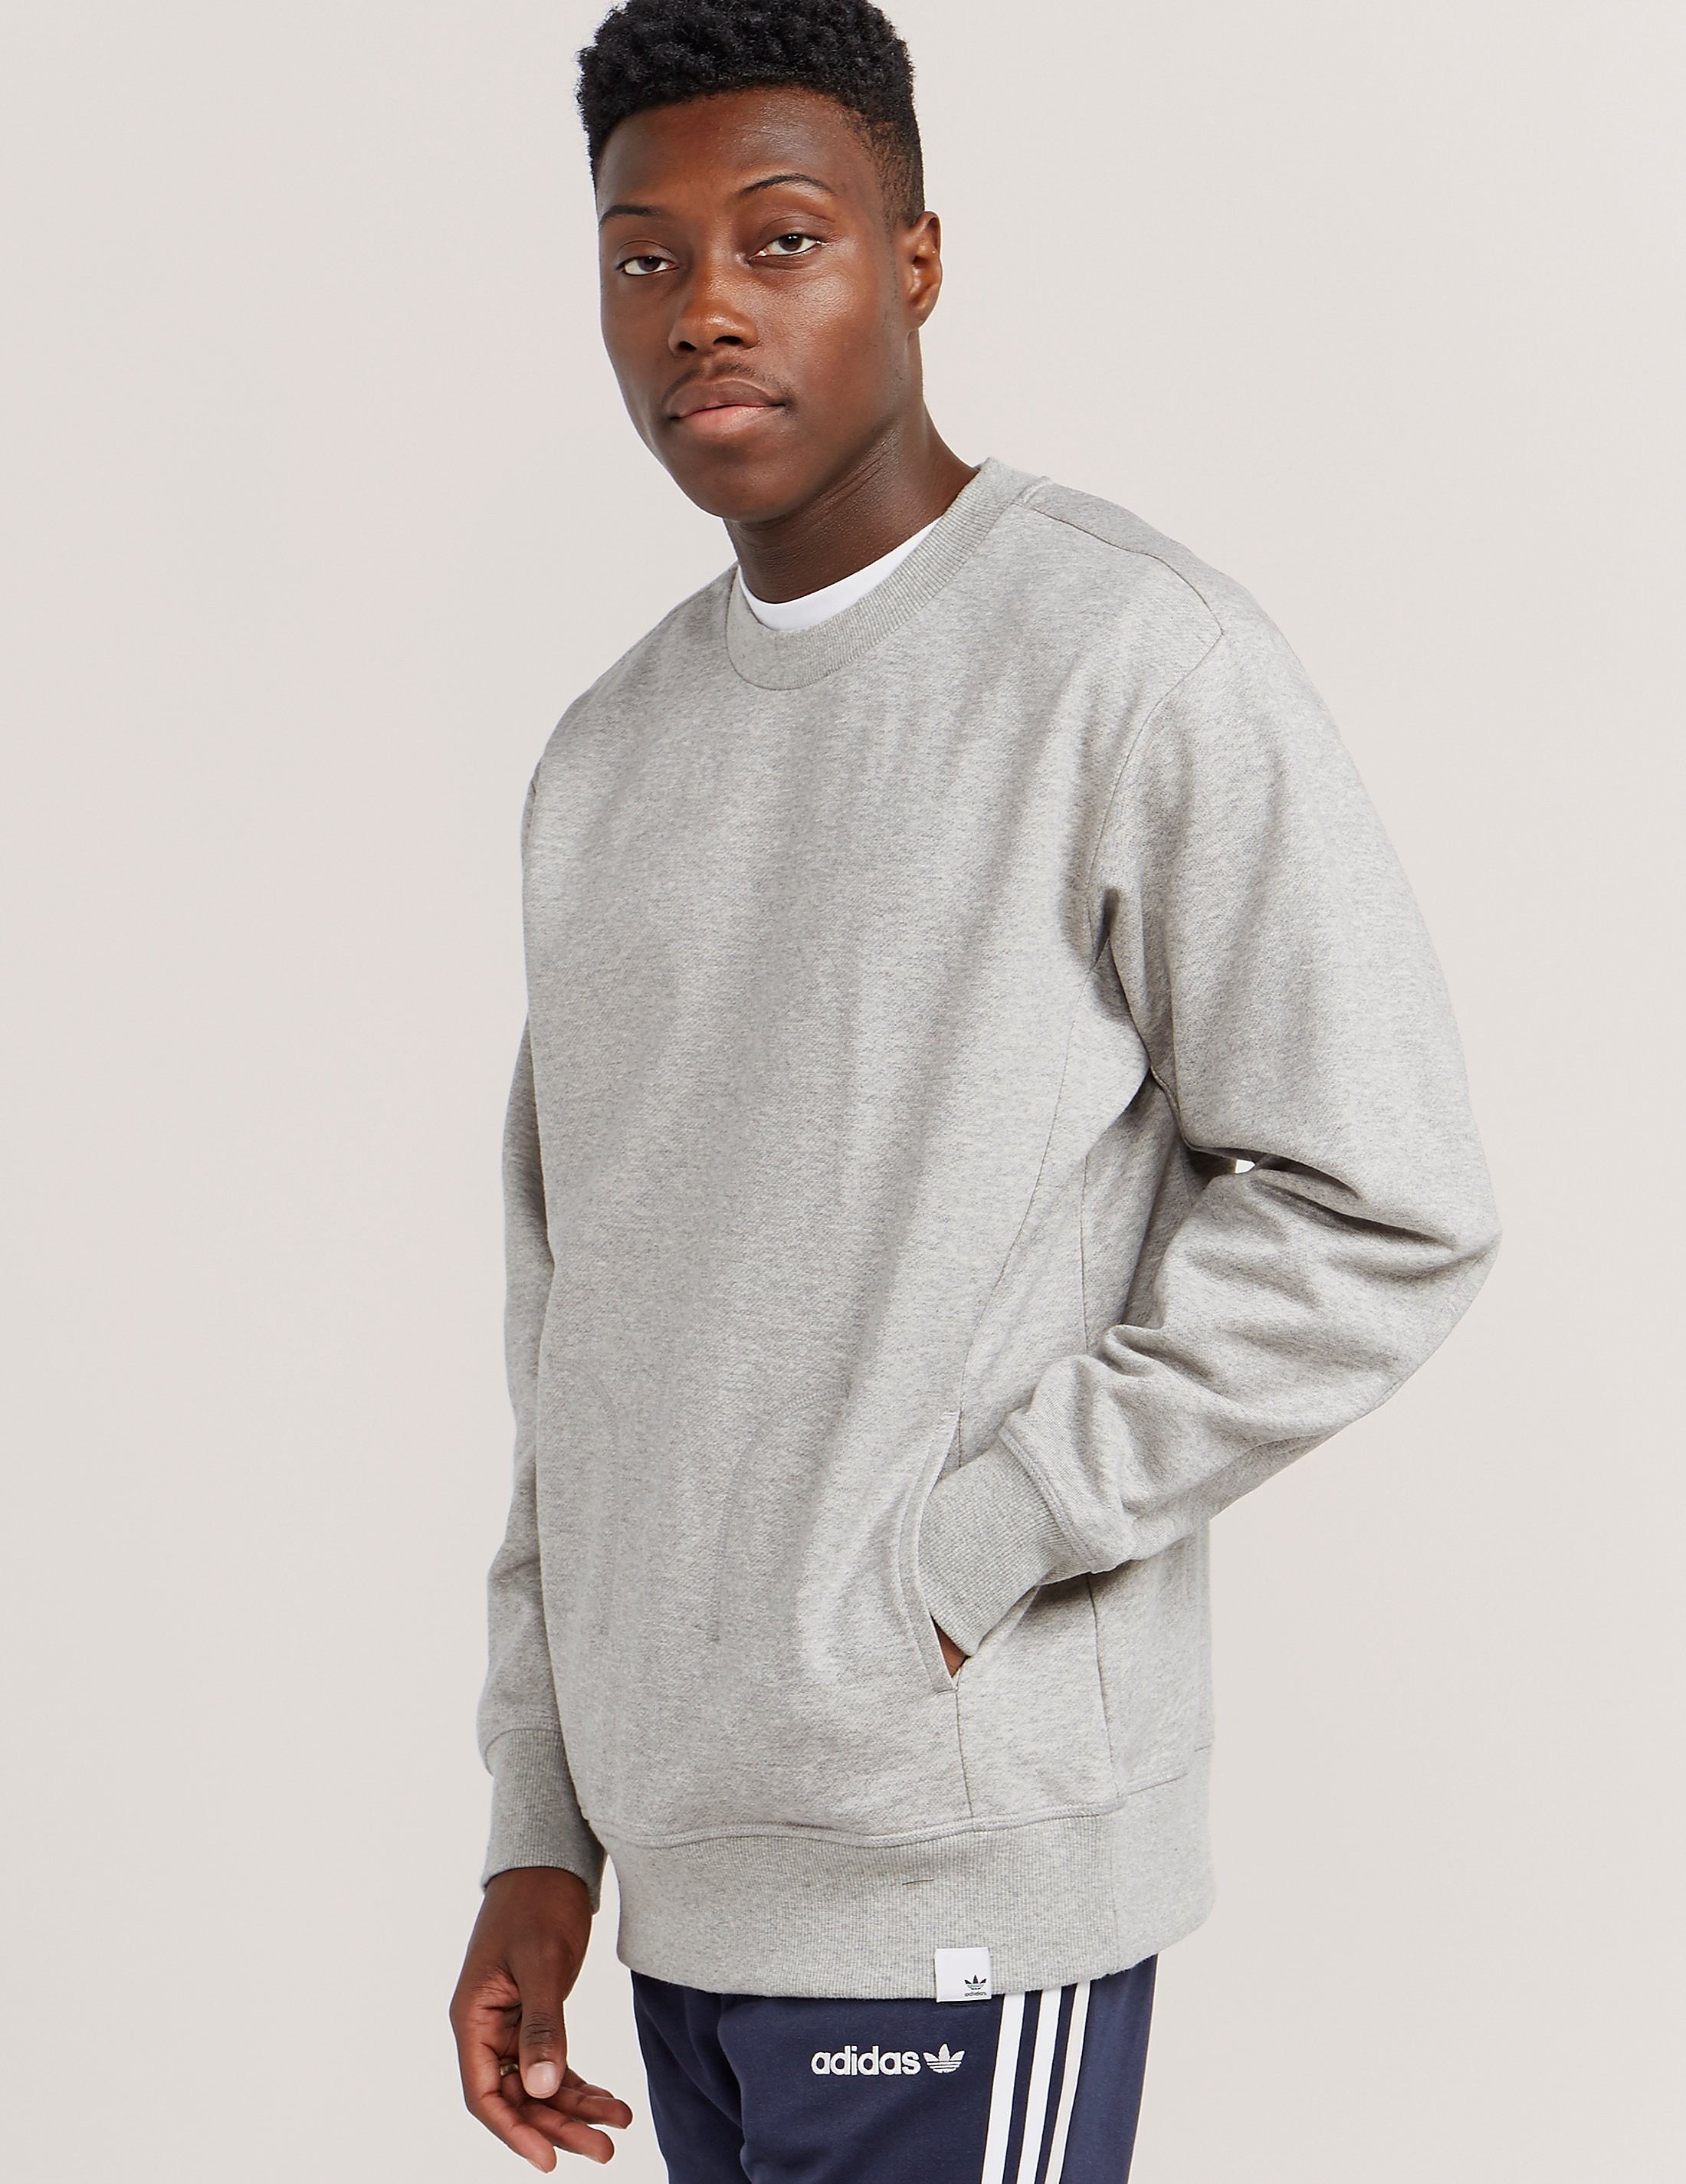 adidas Originals XBYO Sweatshirt